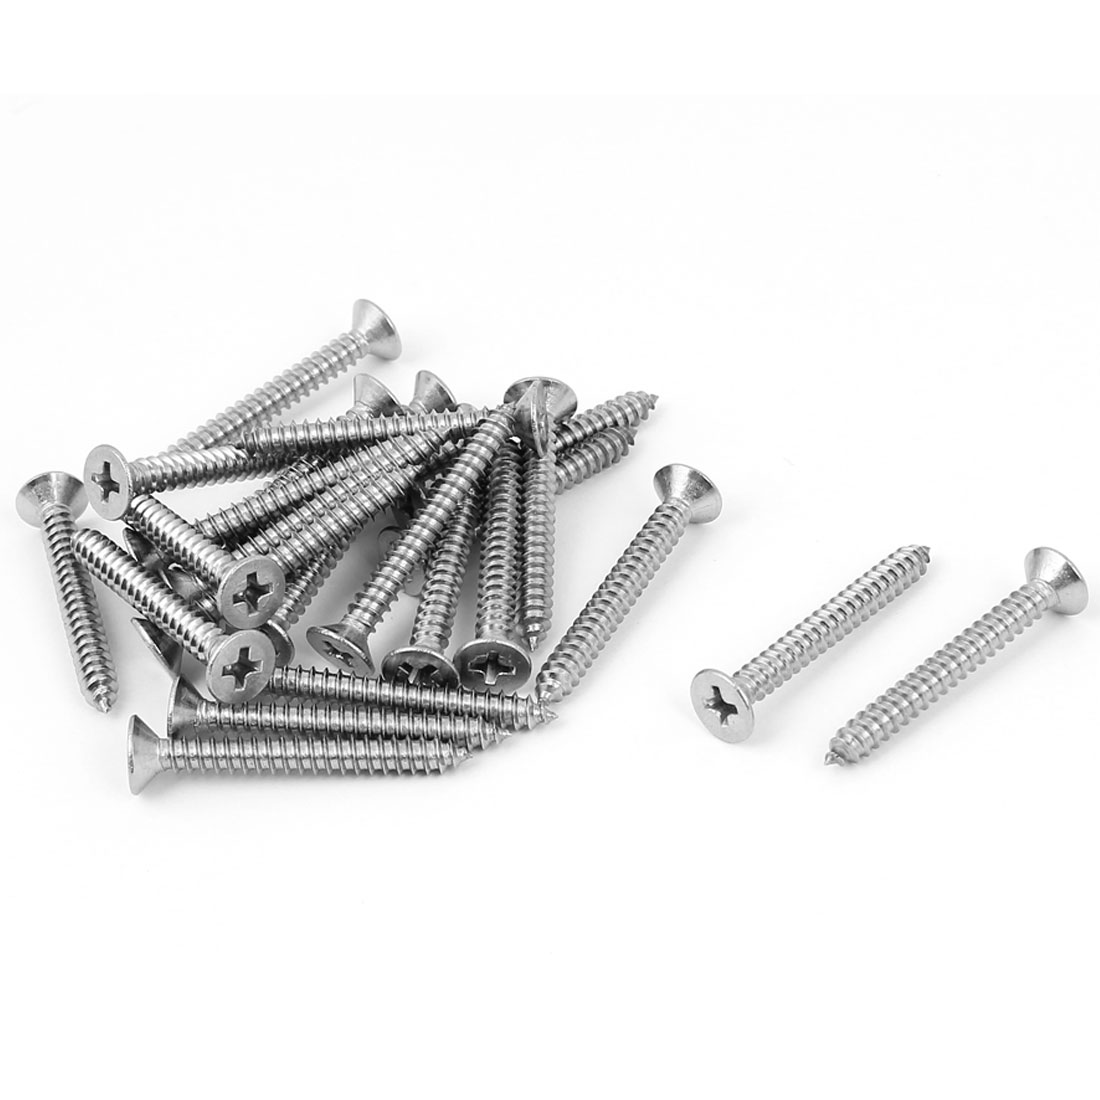 M4.2 x 35mm Phillips Flat Head Self Tapping Screw Silver Tone 25 Pcs